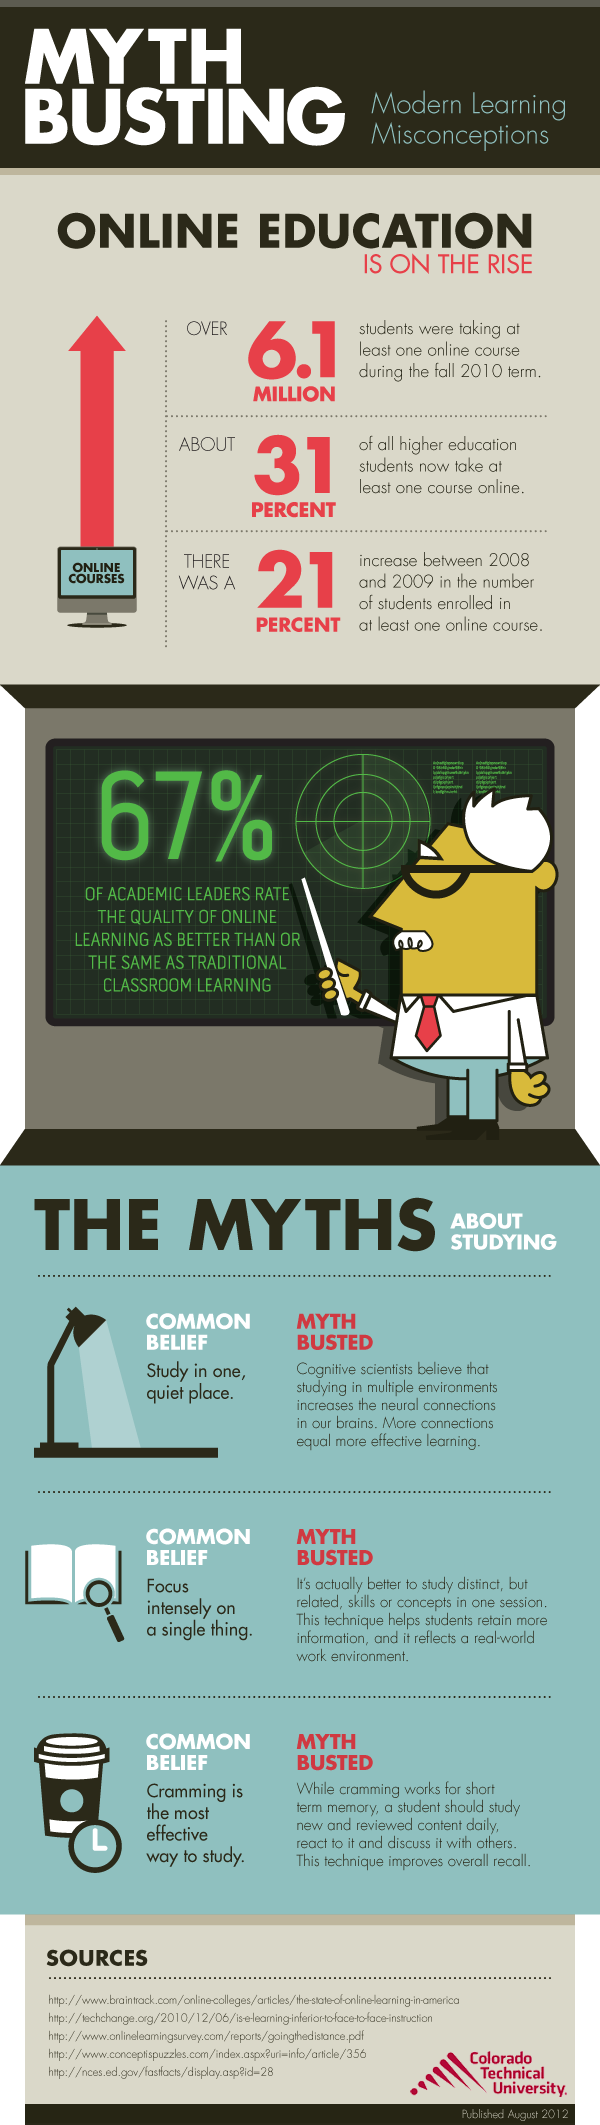 3 Busted Myths About Studying